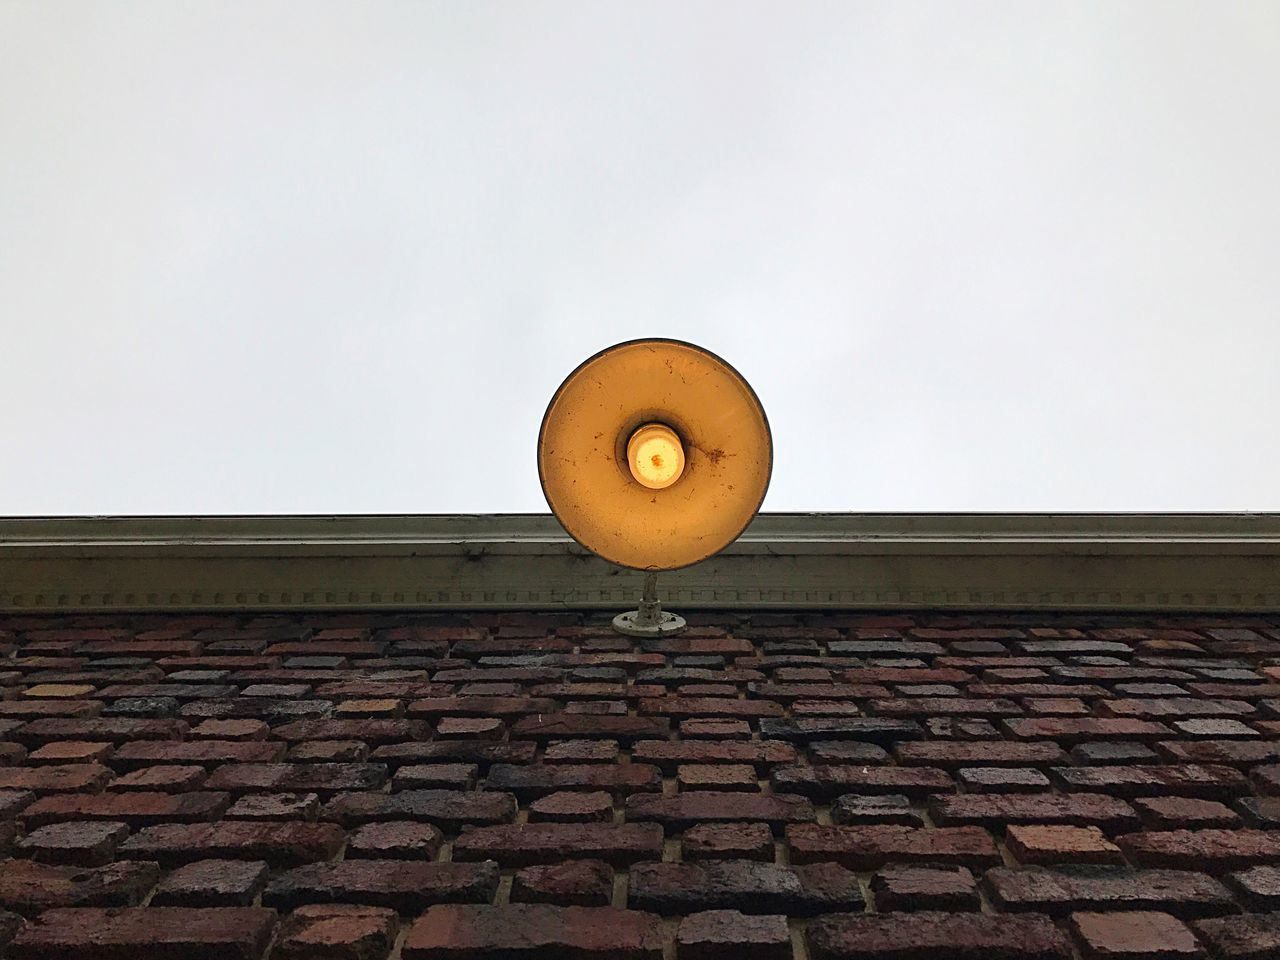 Roof No People Architecture Built Structure Low Angle View Outdoors Day Building Exterior Sky Light Fixture Brick Wall